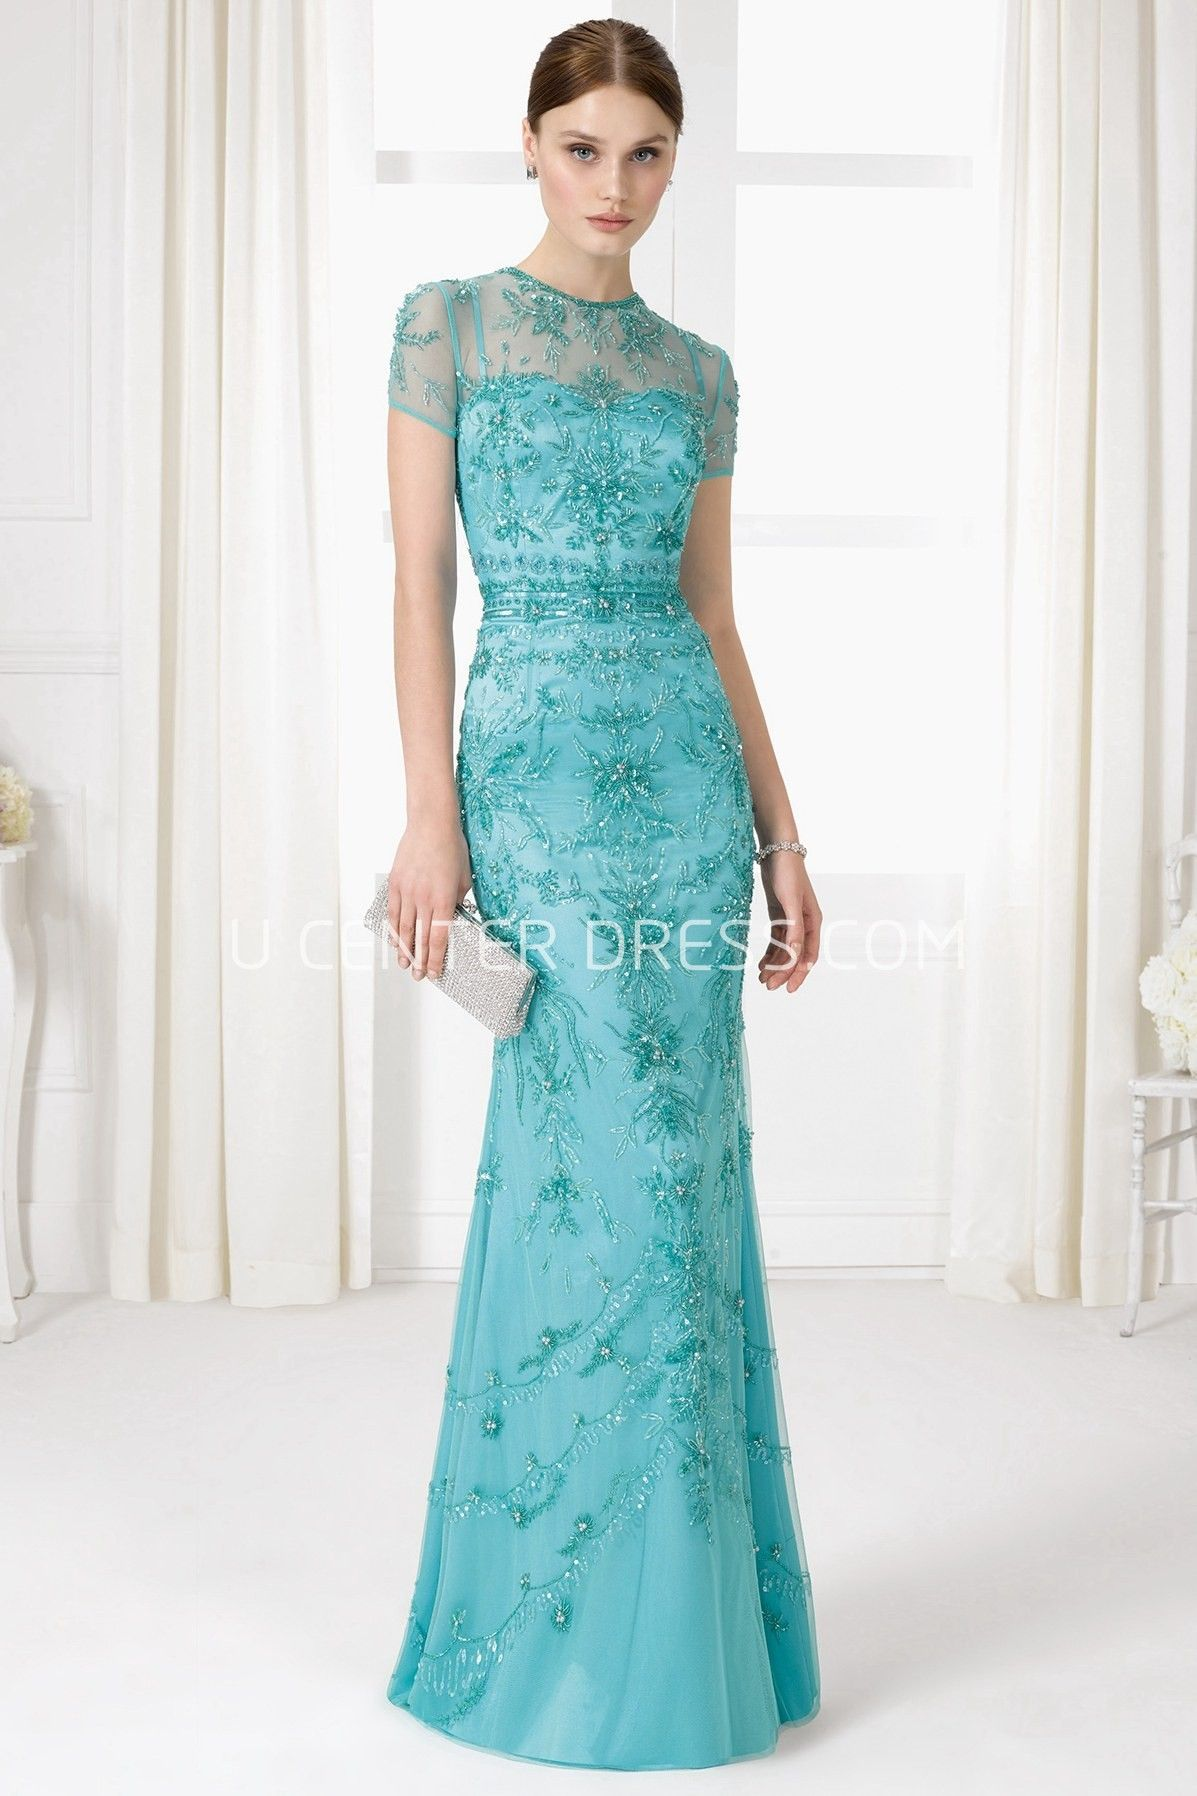 Sheath High Neck Short Sleeve Beaded Tulle Prom Dress With Illusion ...